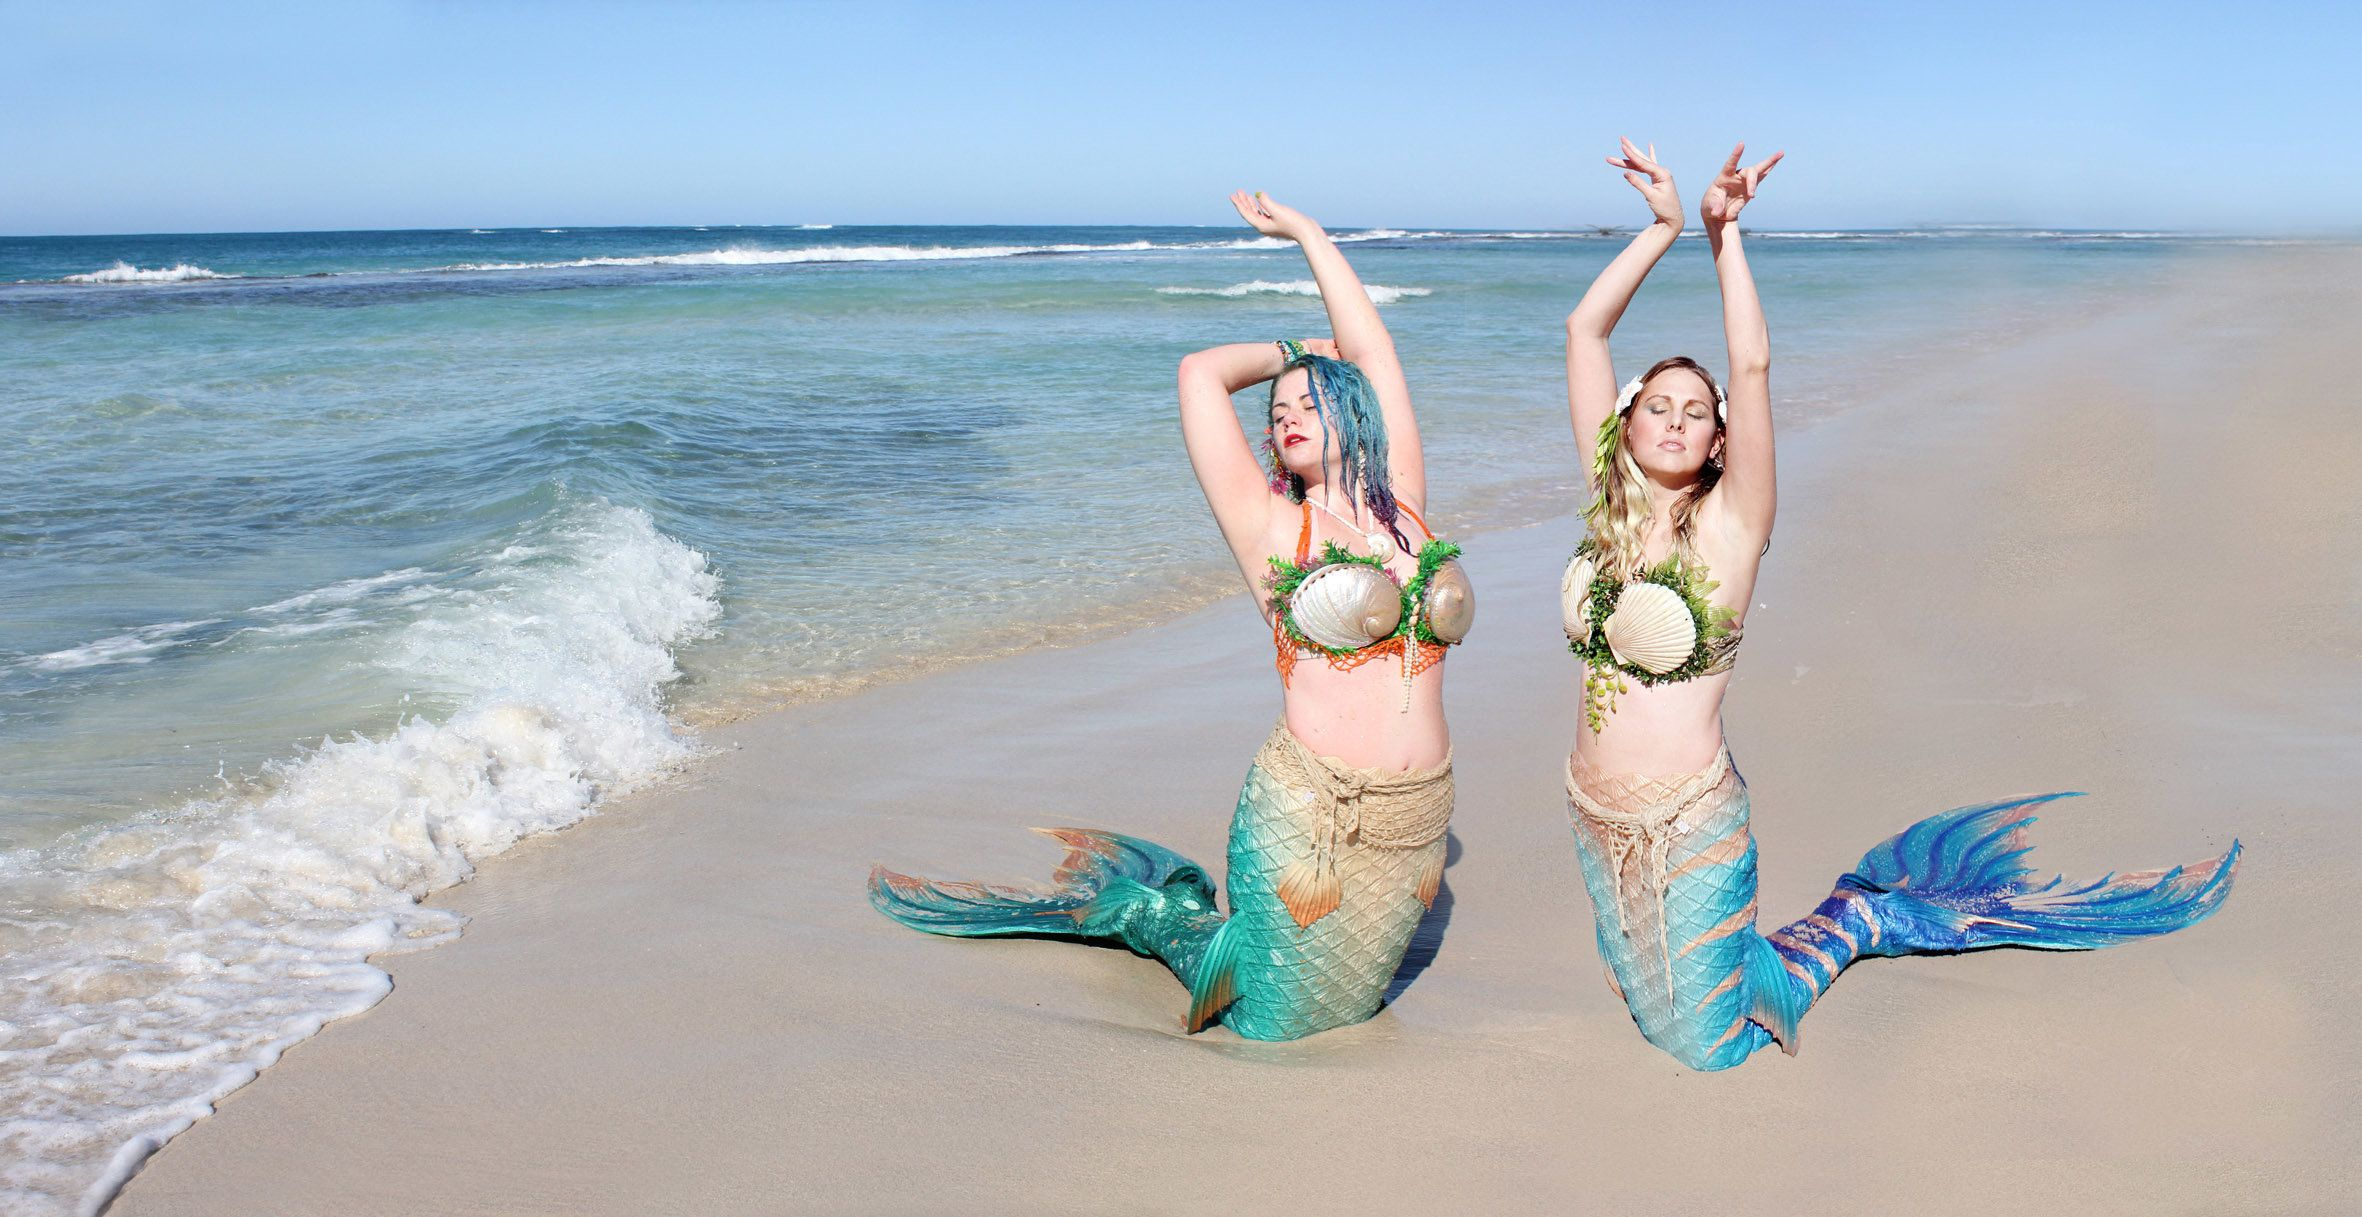 Disney-Obsessed Friends Become 'Real Life Mermaids' With Tails Worth